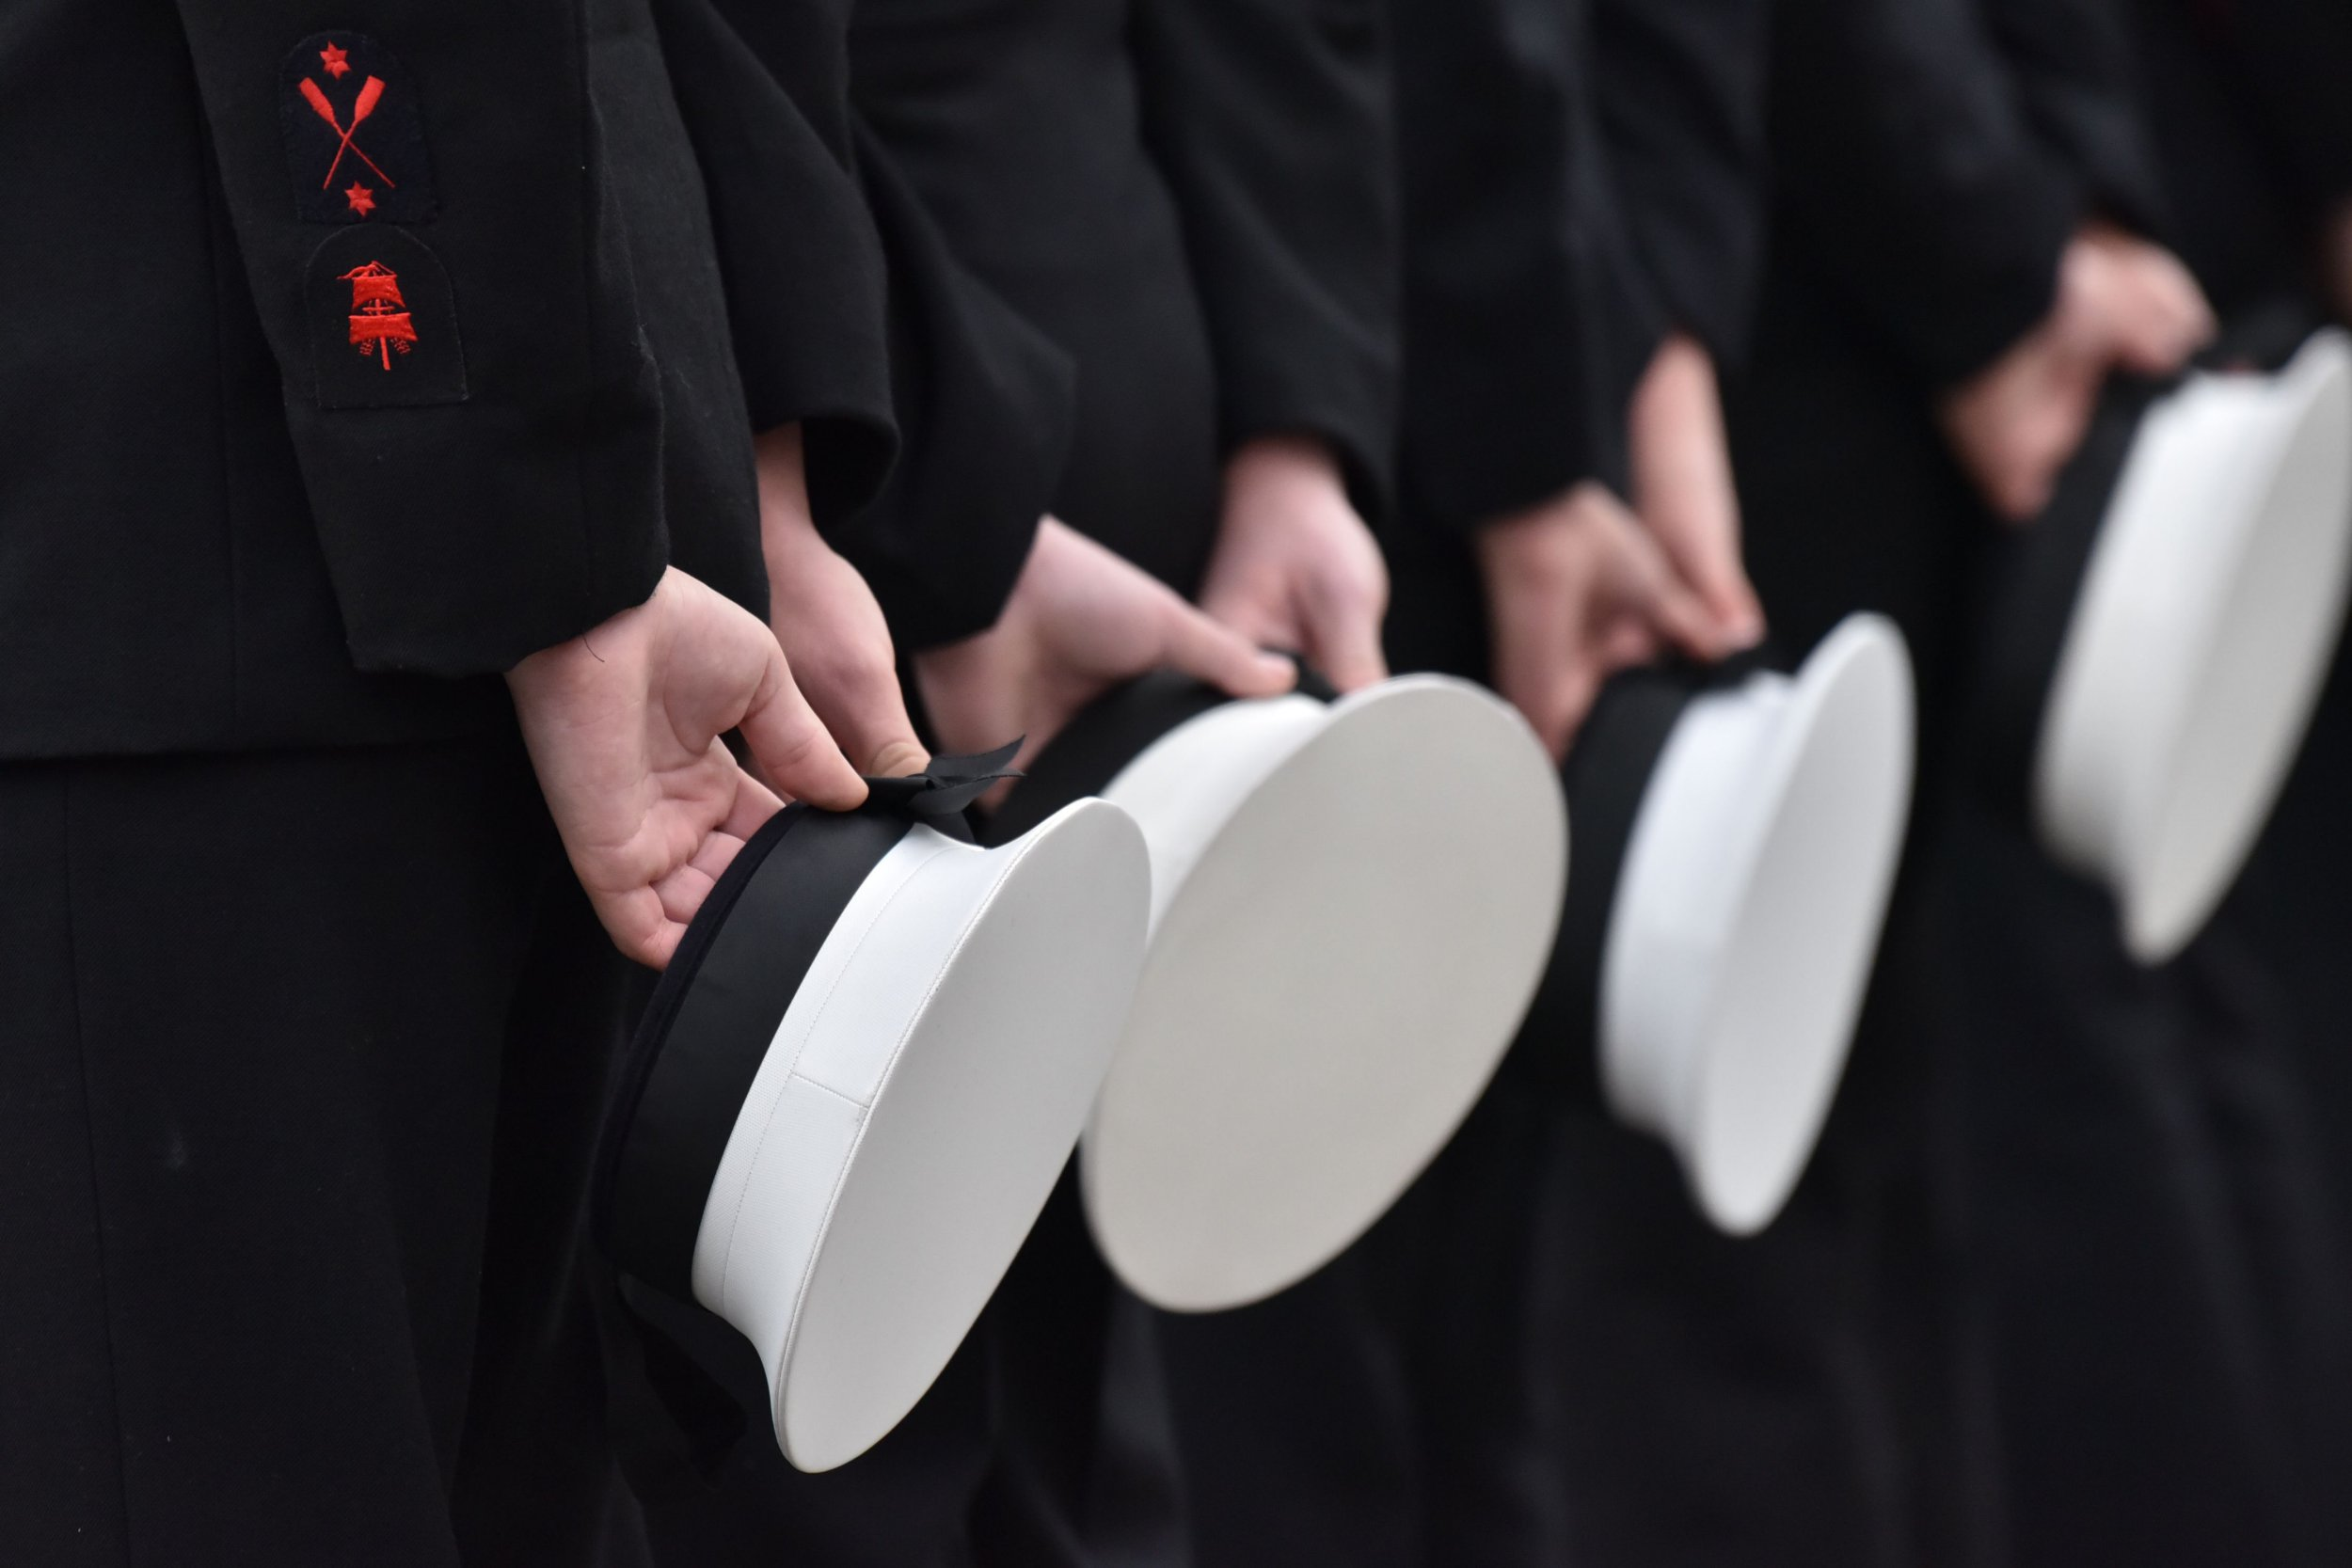 Young cadets were repeatedly sexually abused – but senior officials 'covered it up'